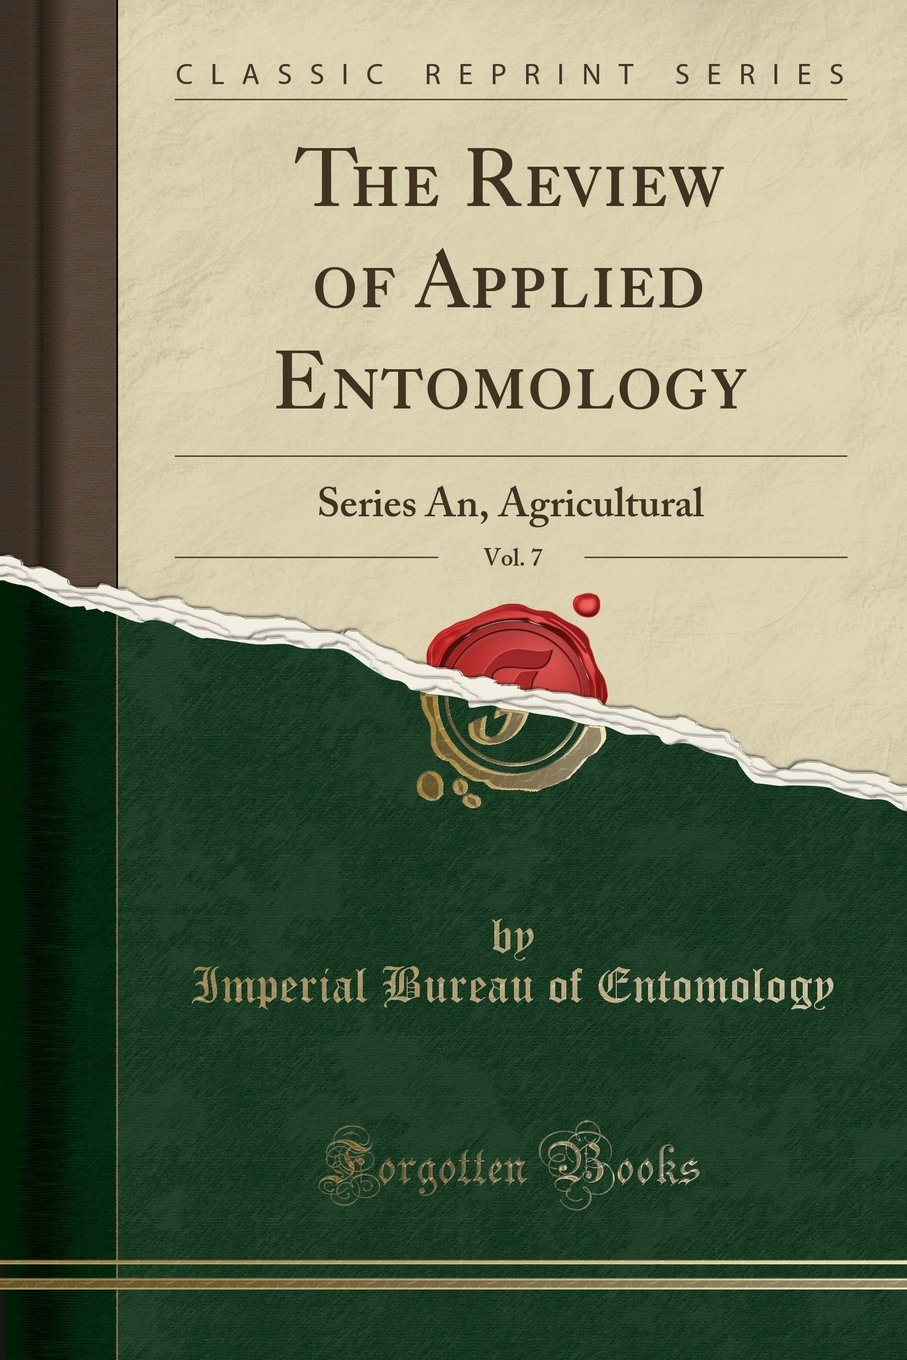 Download The Review of Applied Entomology, Vol. 7: Series An, Agricultural (Classic Reprint) PDF